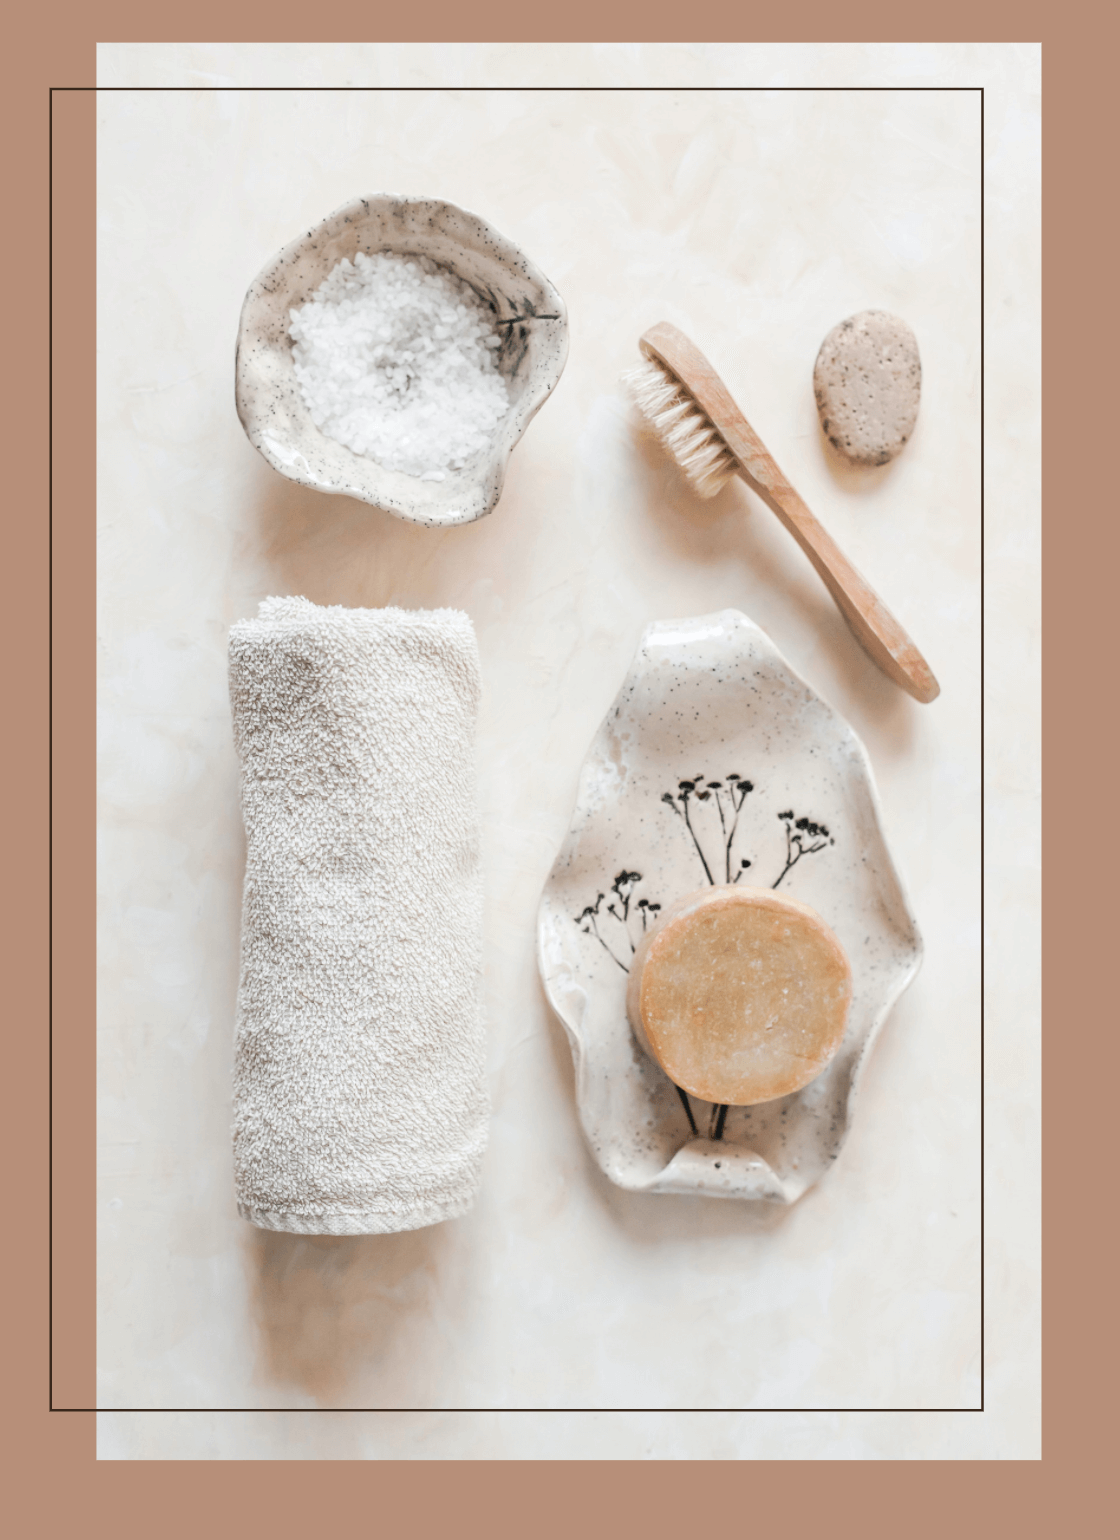 Self-Care-Ritual-Tools-Laying-On-Table-Including-Towel-Dry-Brush-Natural-Soap-Exfoliating-Scrub-And-Pumice-Stone